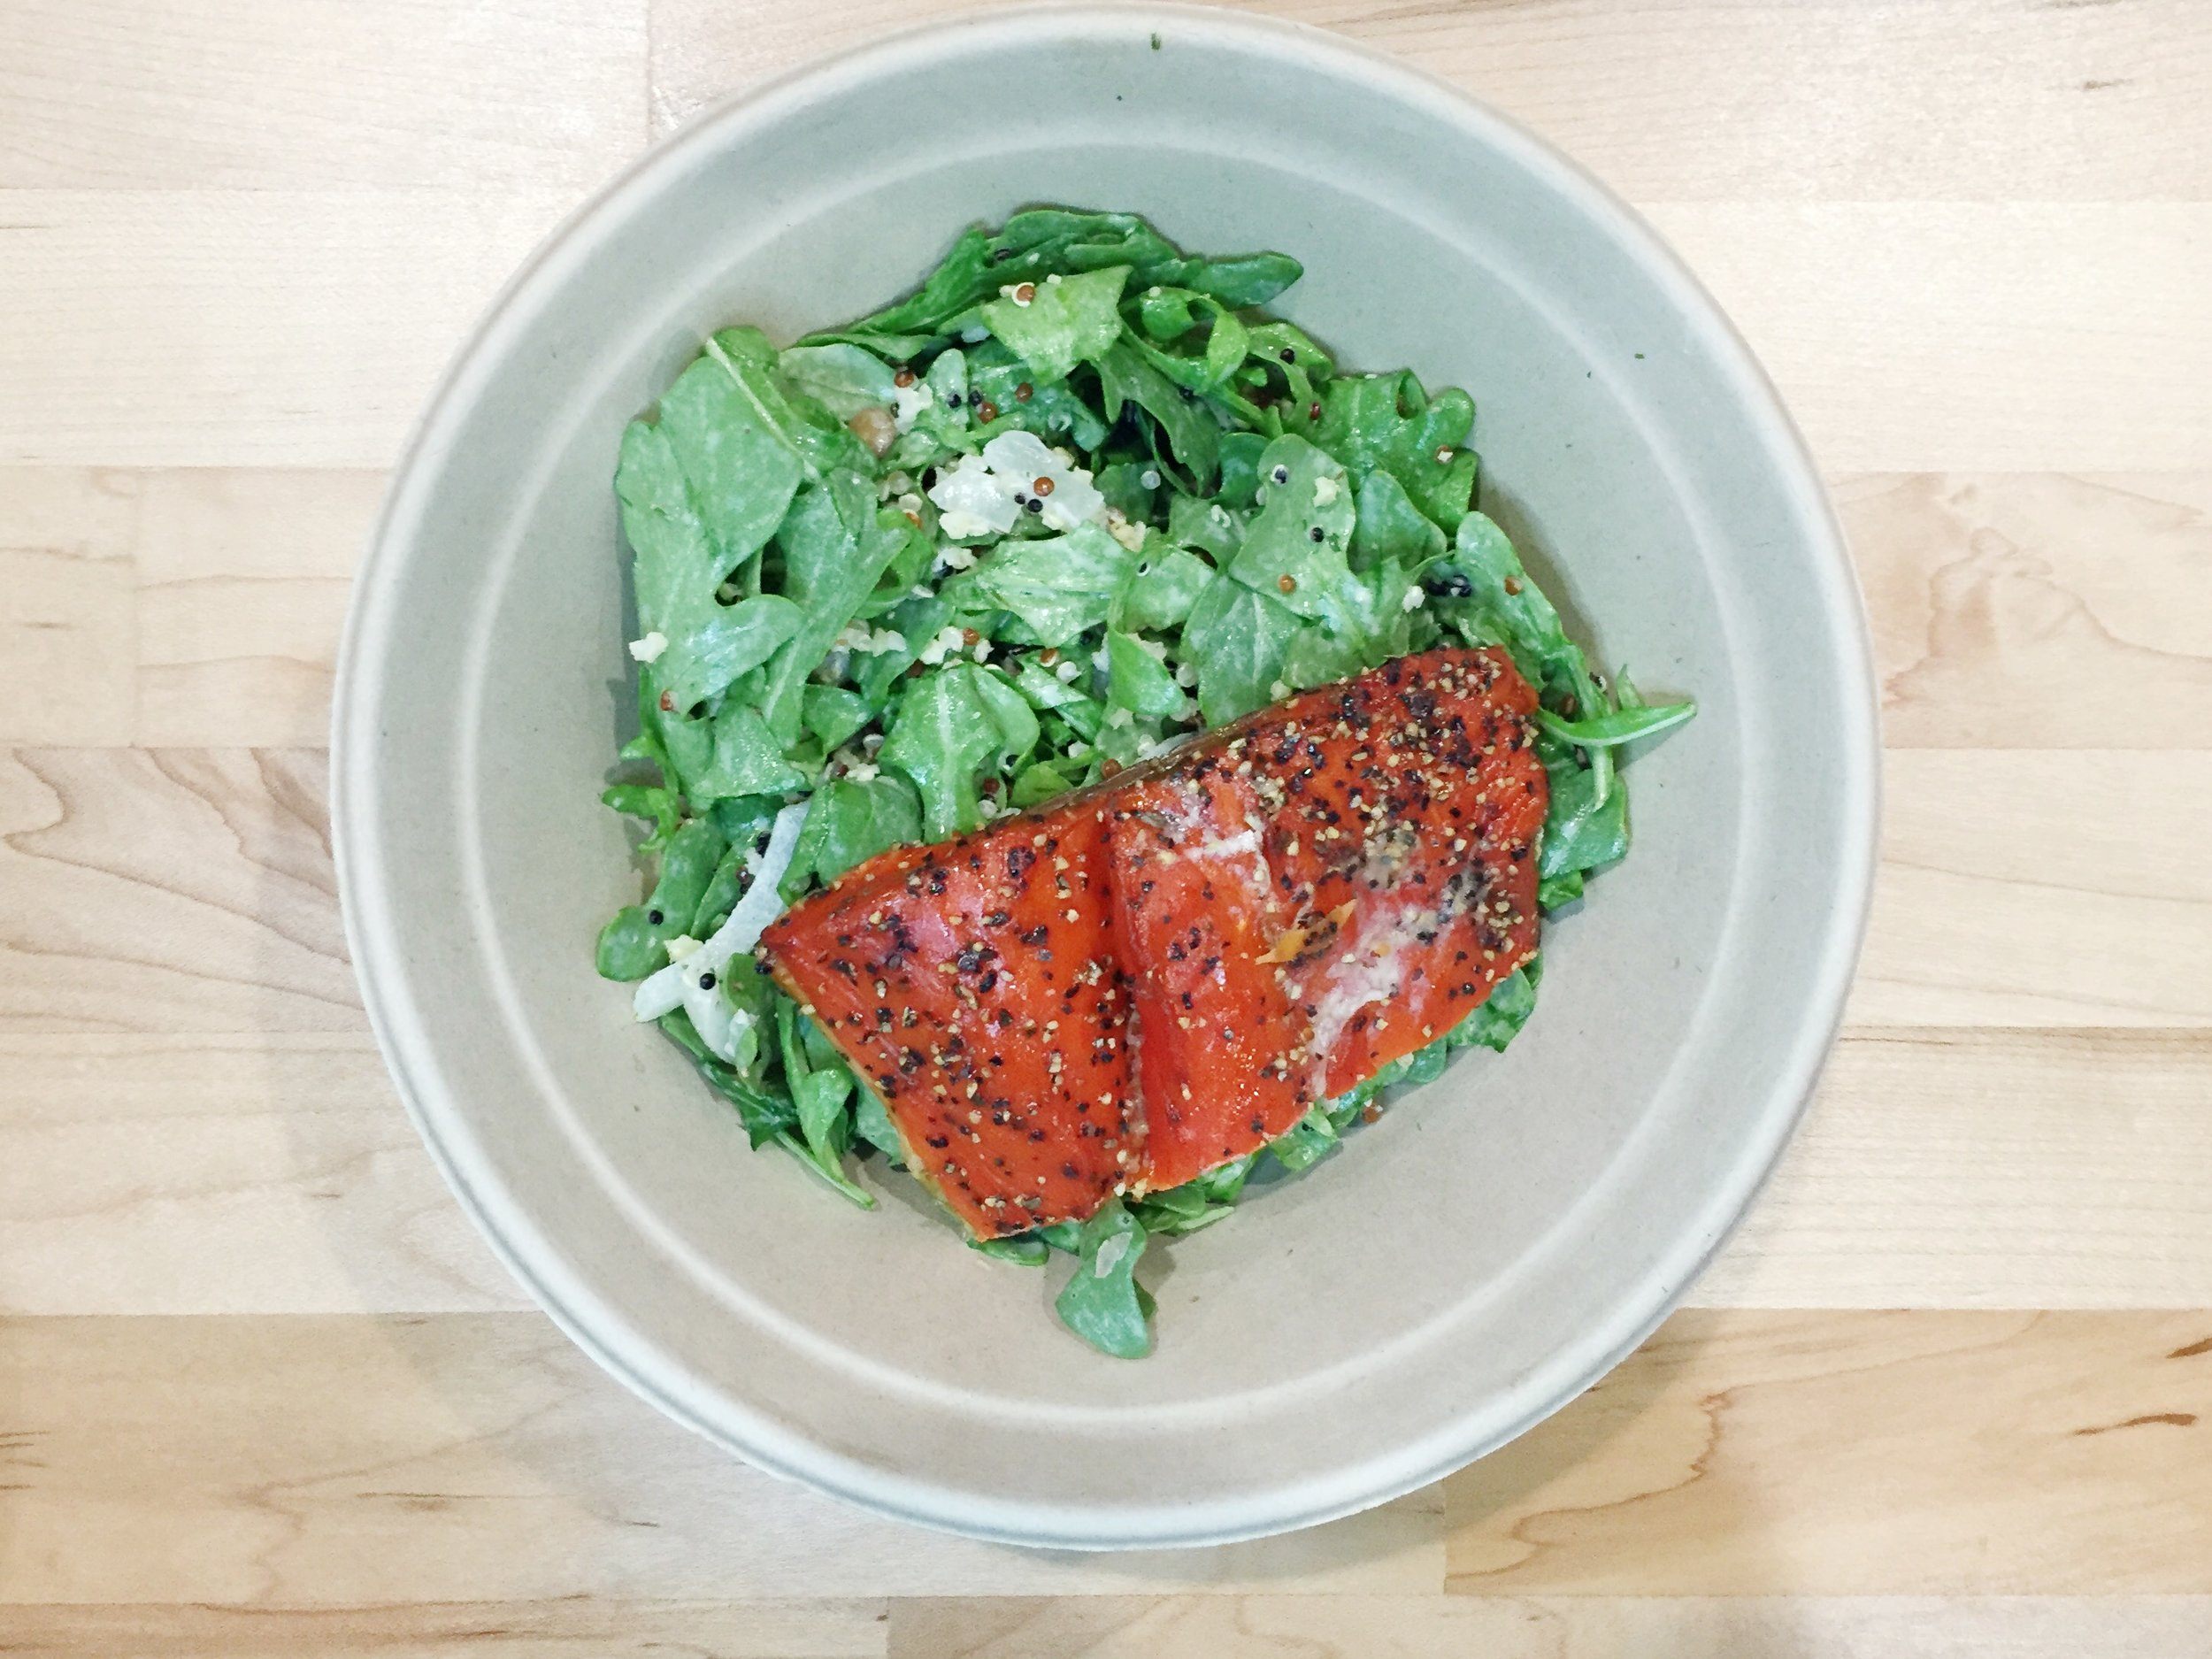 Wild Smokehouse Salmon Plate  | Smoked wild sockeye salmon, quinoa, lentil and millet blend, pickled sweet onions, and arugula. Tossed in Dill Caraway dressing.